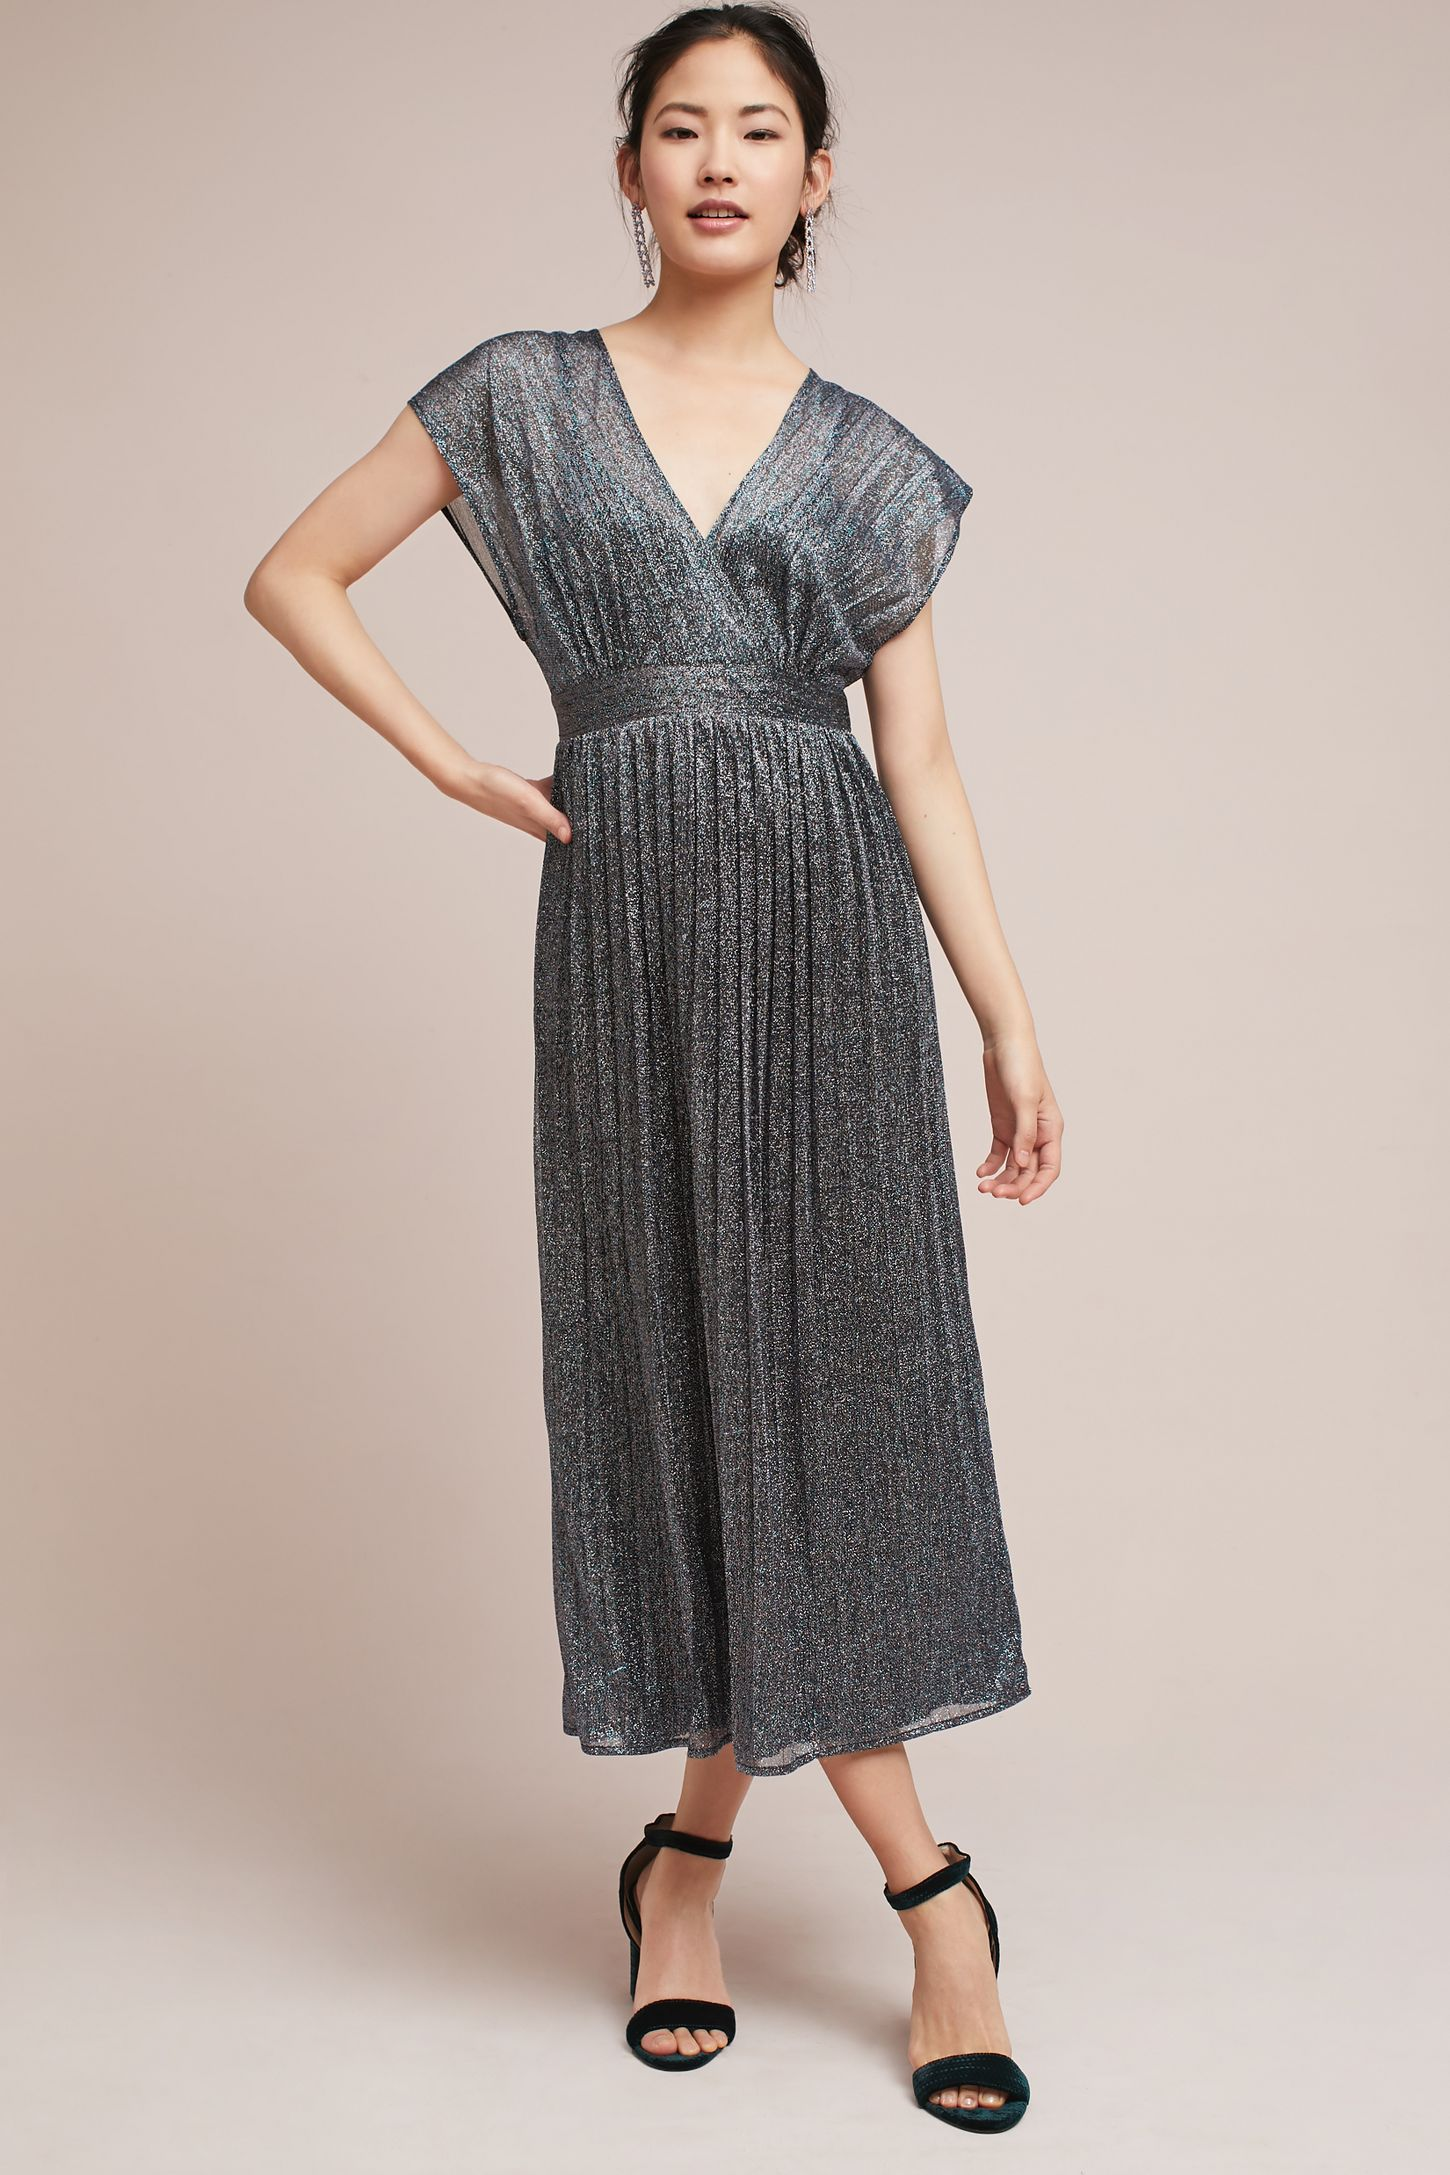 Cocktail special occasion dresses anthropologie pleated metallic wrap dress ombrellifo Image collections